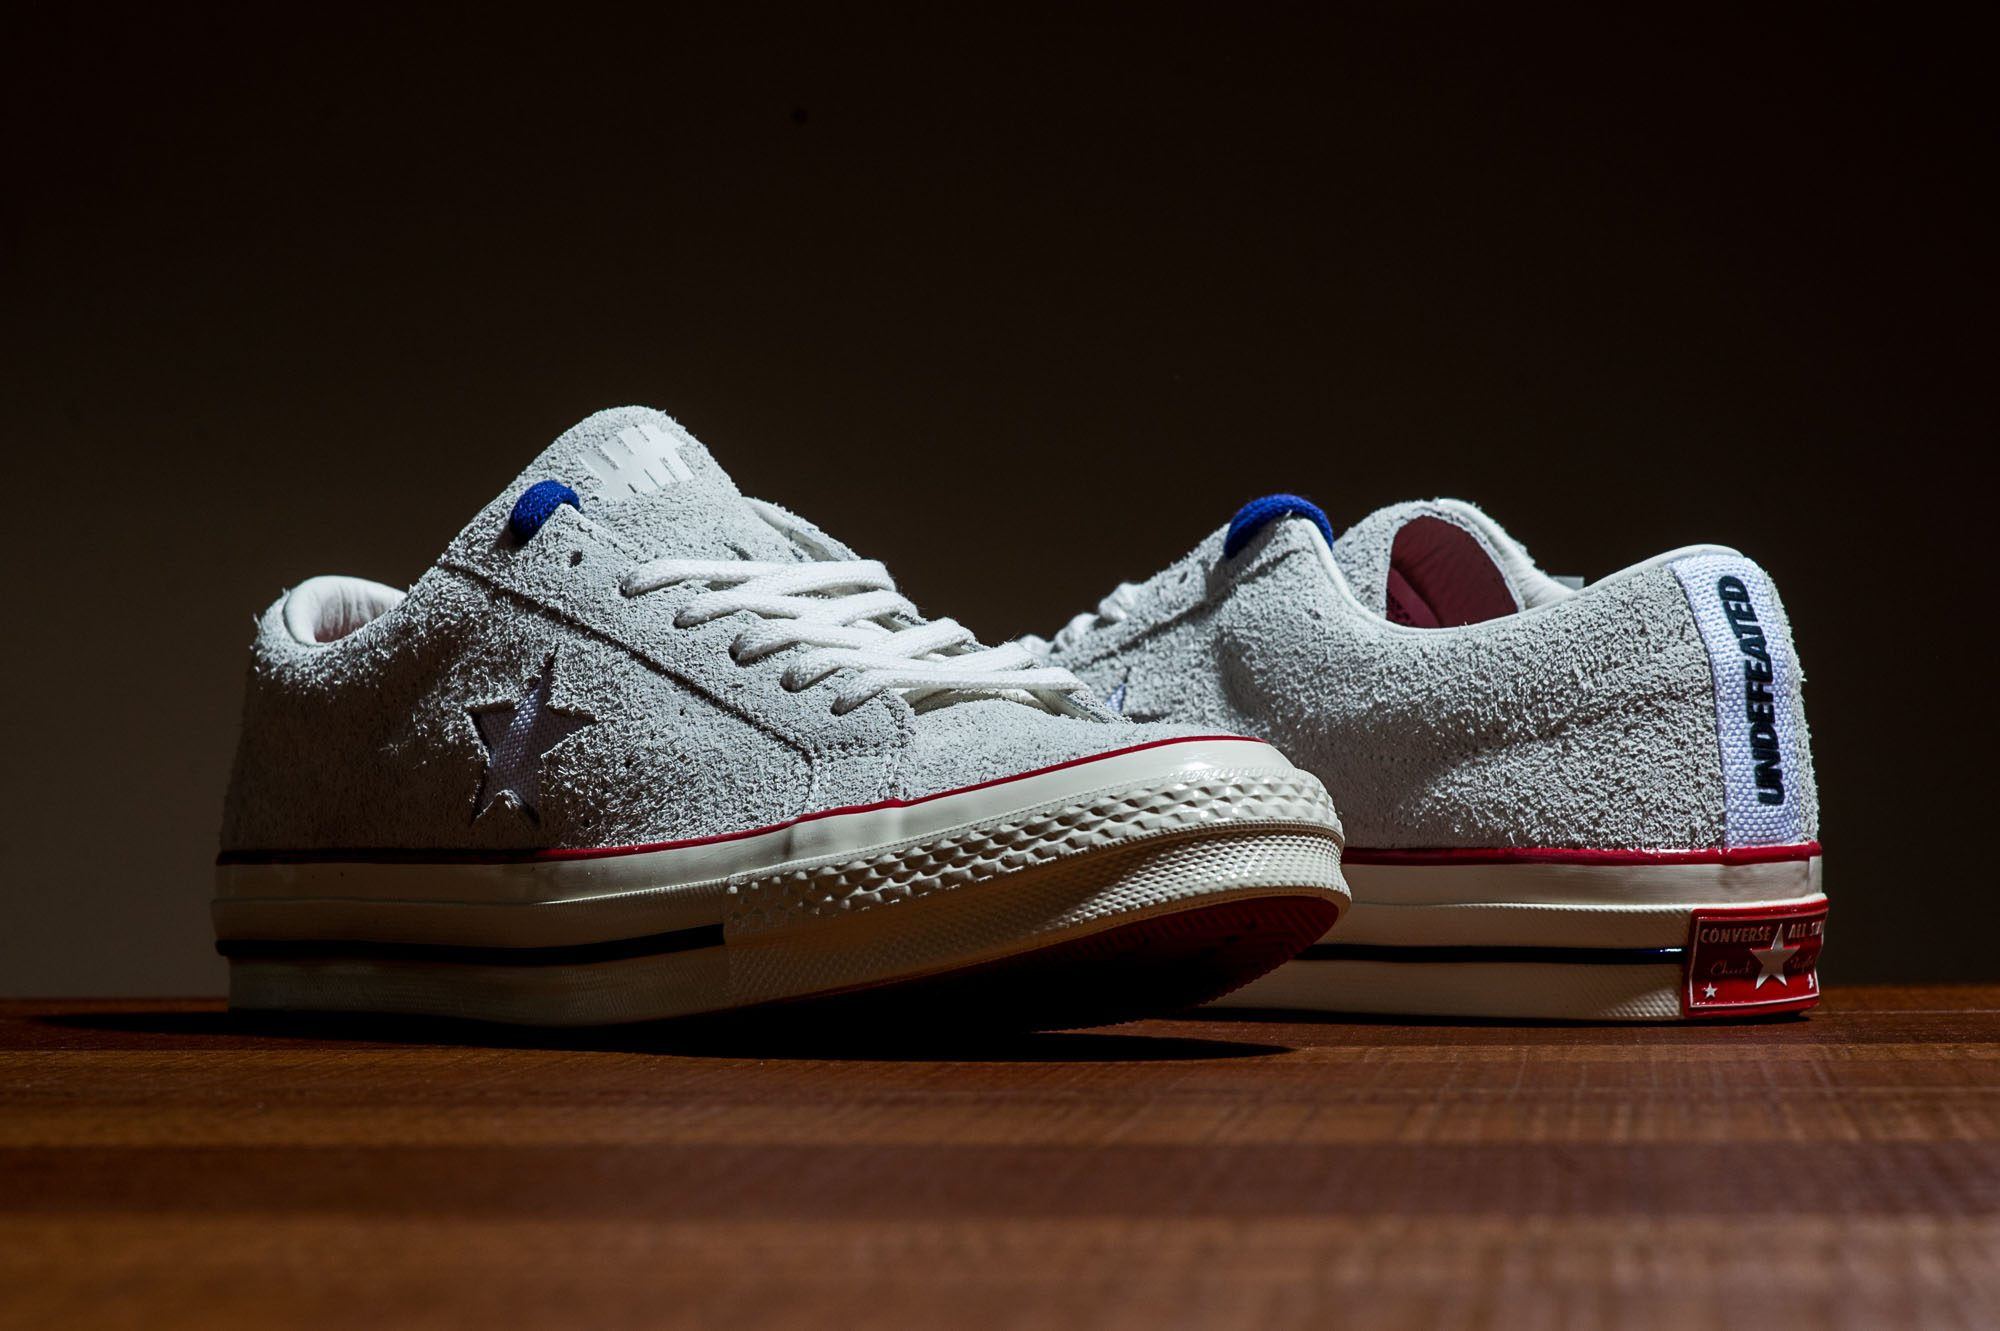 converse-onestar-74-undefeated-undftd-collaboration-5